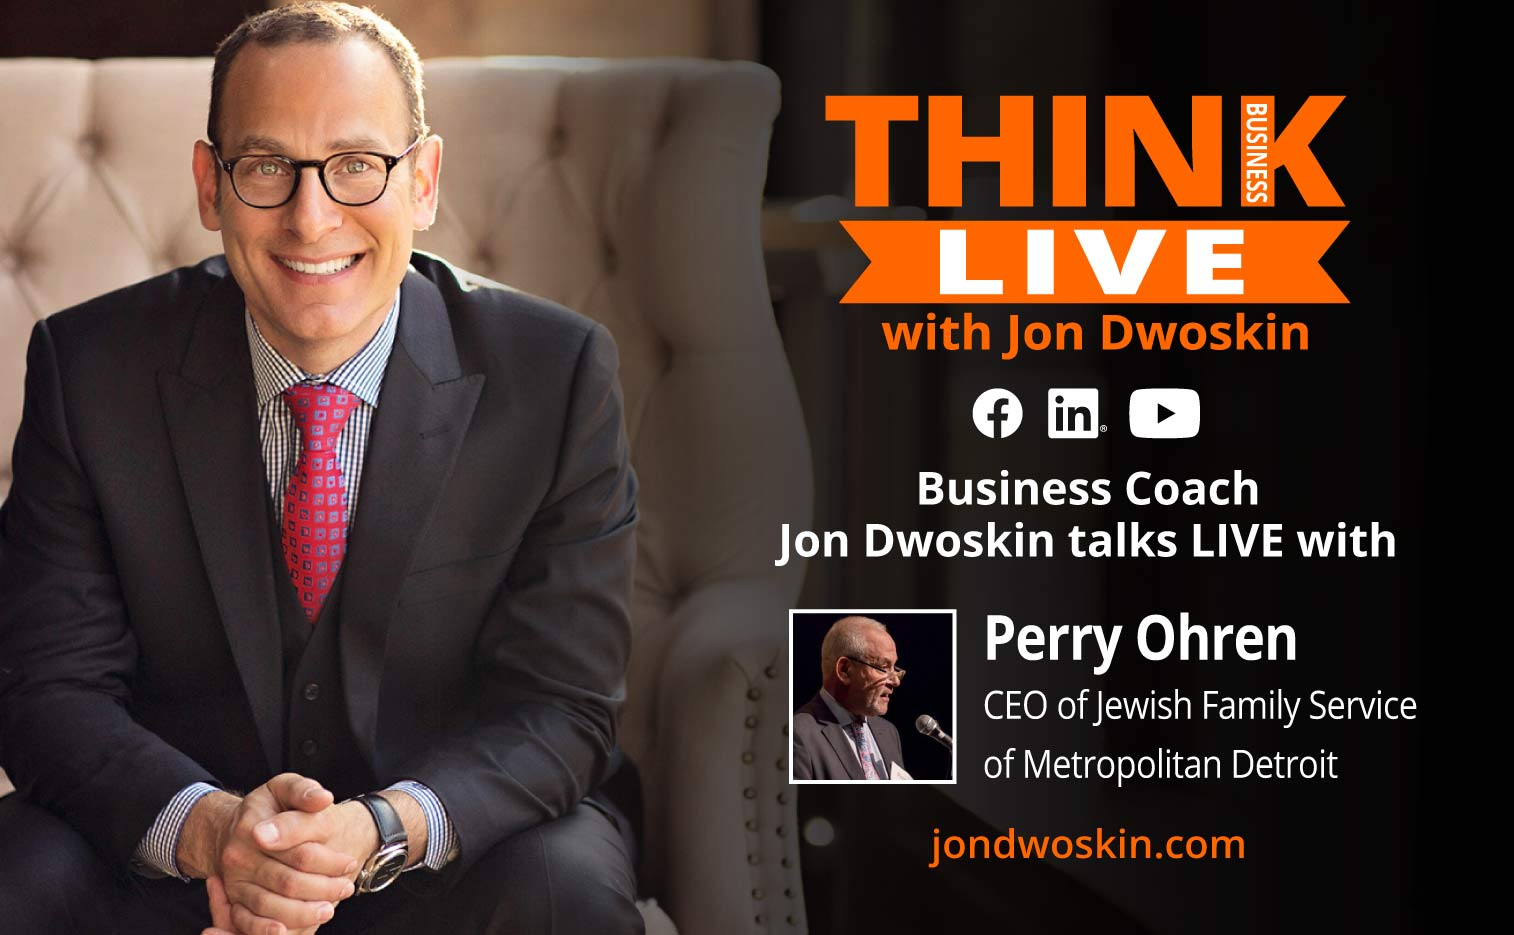 Jon Dwoskin Talks LIVE with Perry Ohren, CEO of Jewish Family Service of Metropolitan Detroit